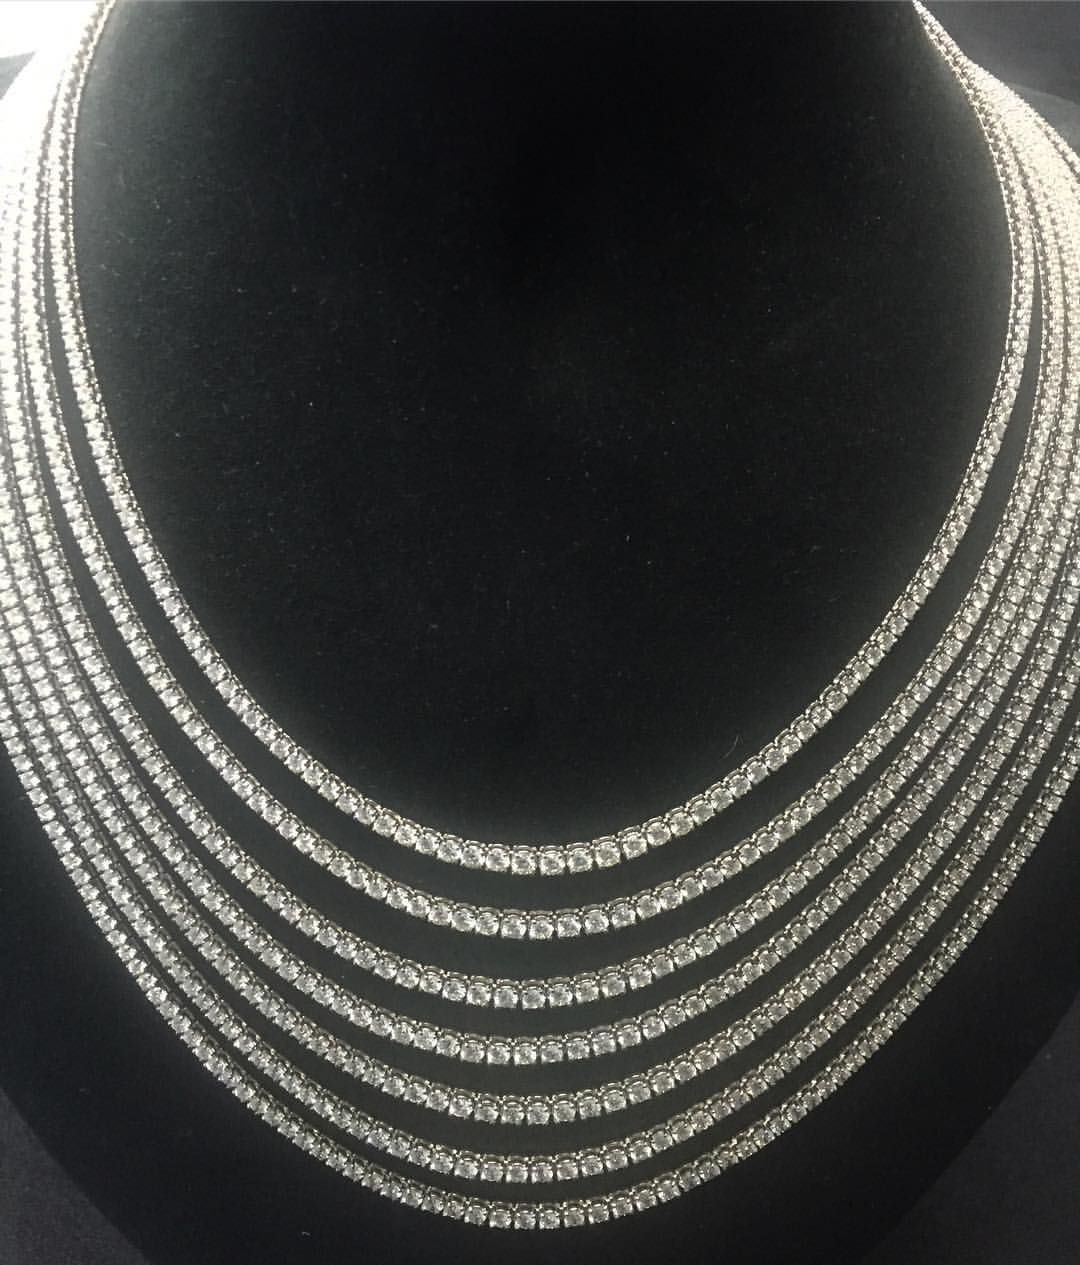 Looking for that finishing touch for your holiday? How about a diamond necklace with 100 dazzling carats? 💎